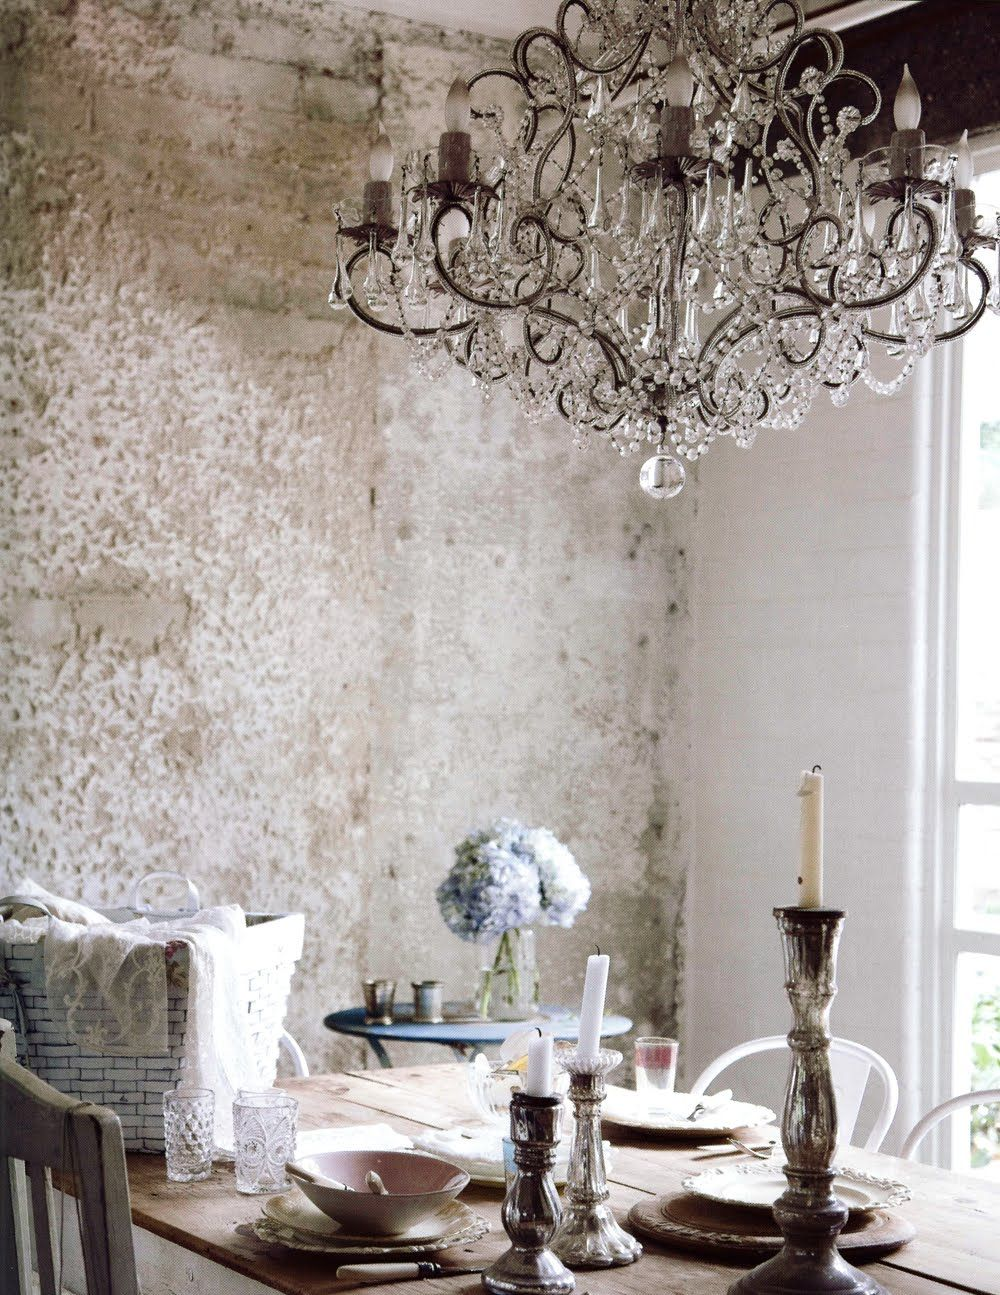 Awesome Furniture French Country Glass Dining Room Chandelier Above Custom  Diy Reclaimed Wood Dining Table For Rustic Dining Room With Exposed  Concrete Wall ...